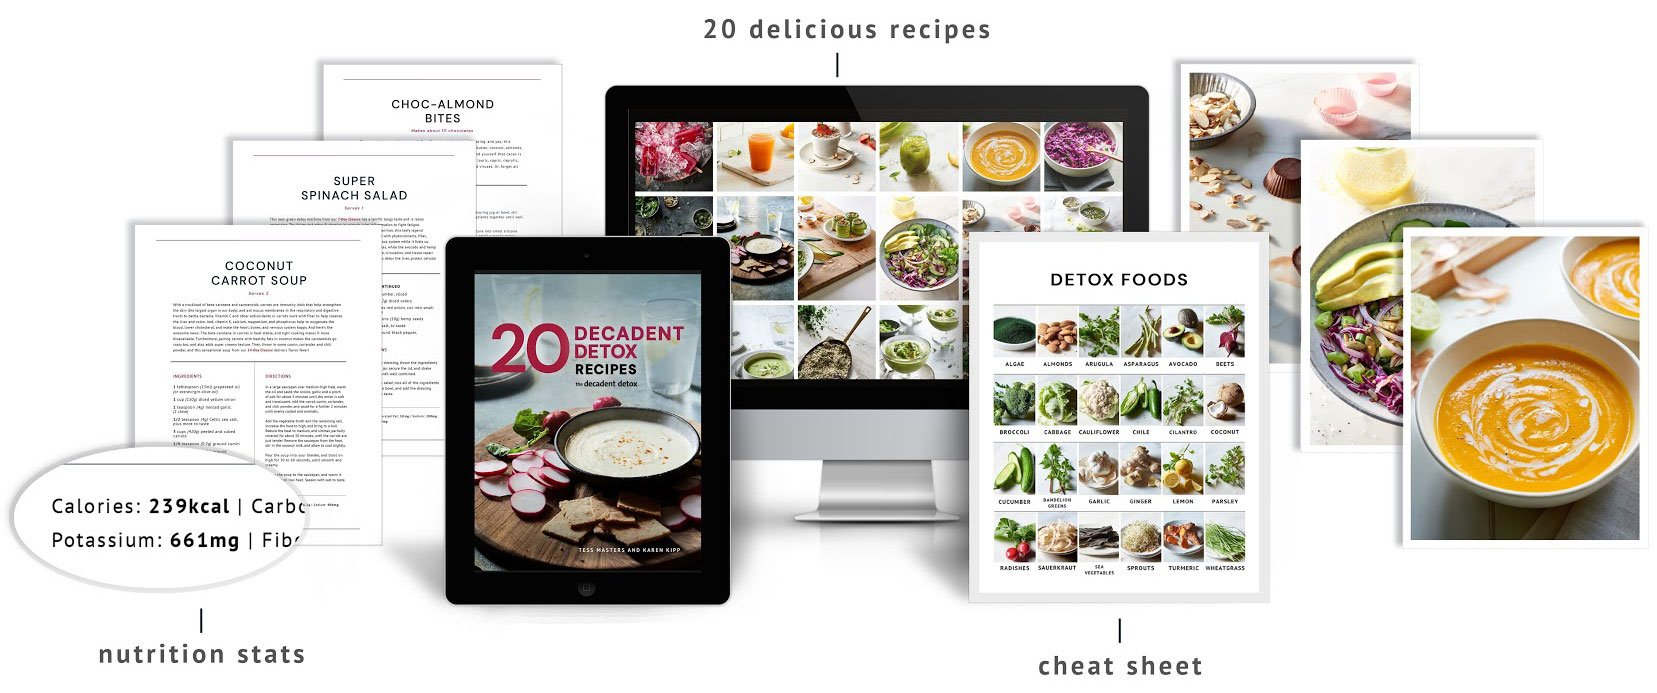 20-DecadentDetoxRecipes